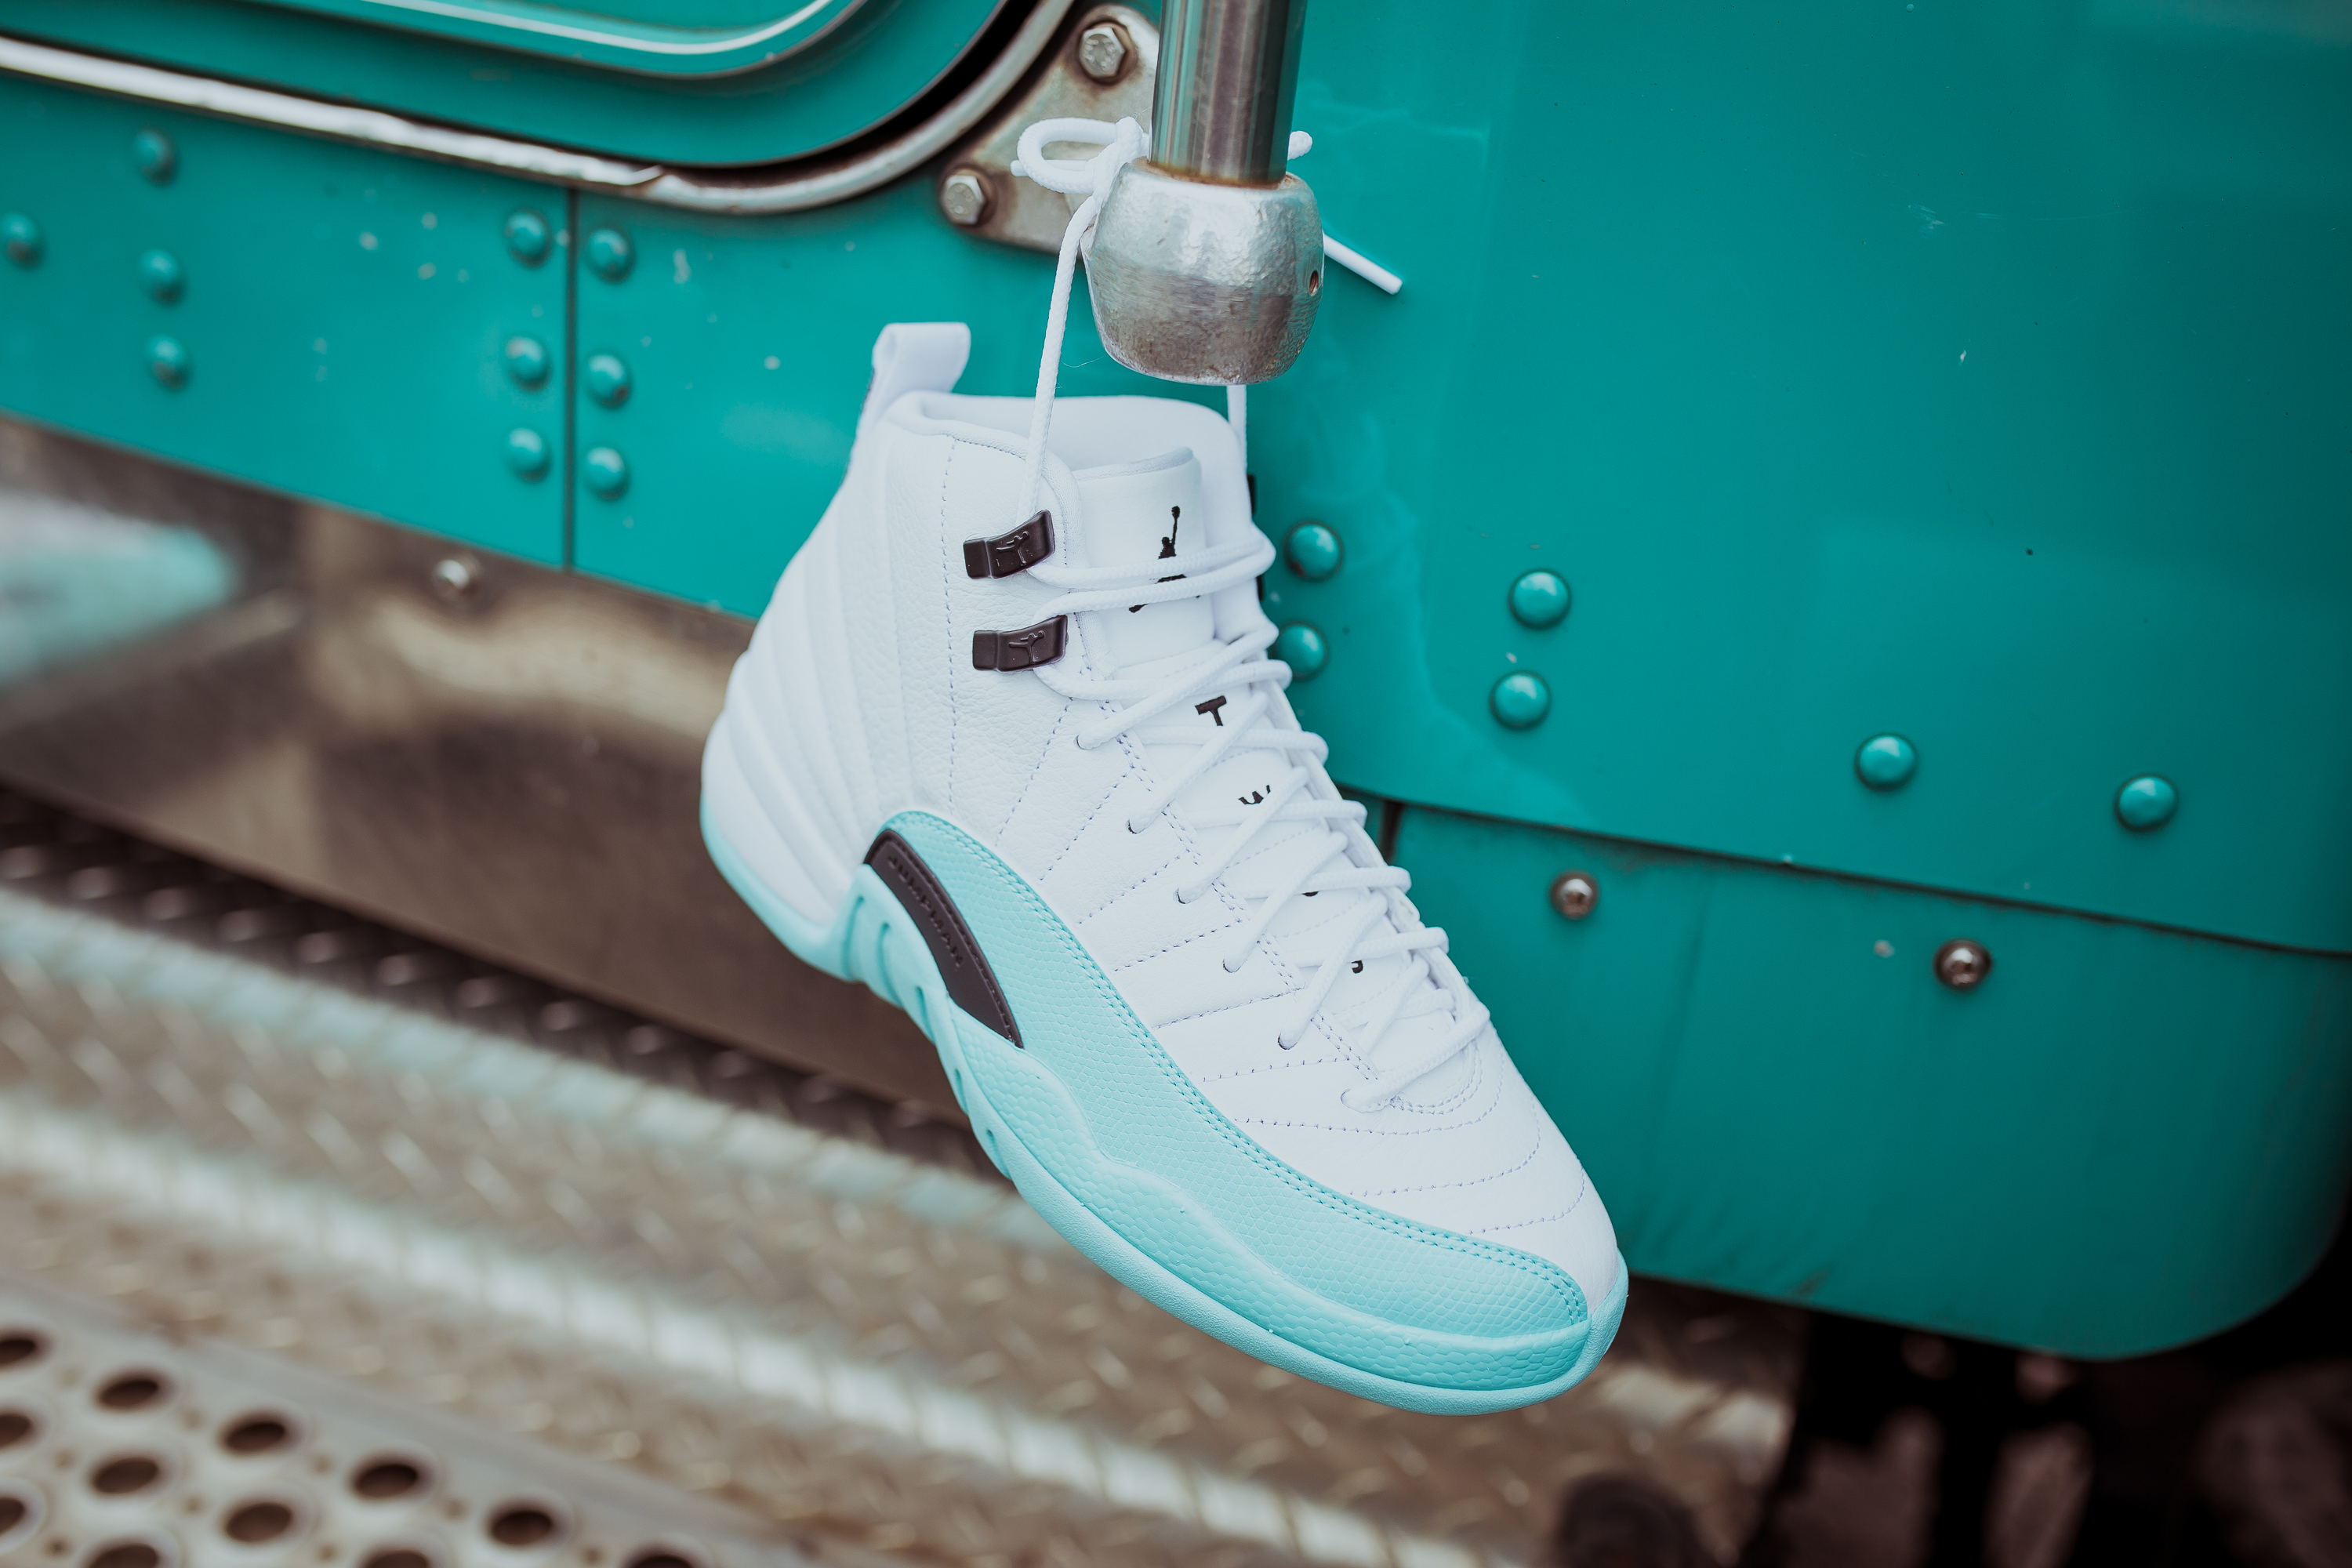 9f4d4d9833c9 usa air jordan retro 12 gg light aqua 23679 71619  discount air jordan 12  retro gs 510815 100 style 2 c428c ec071